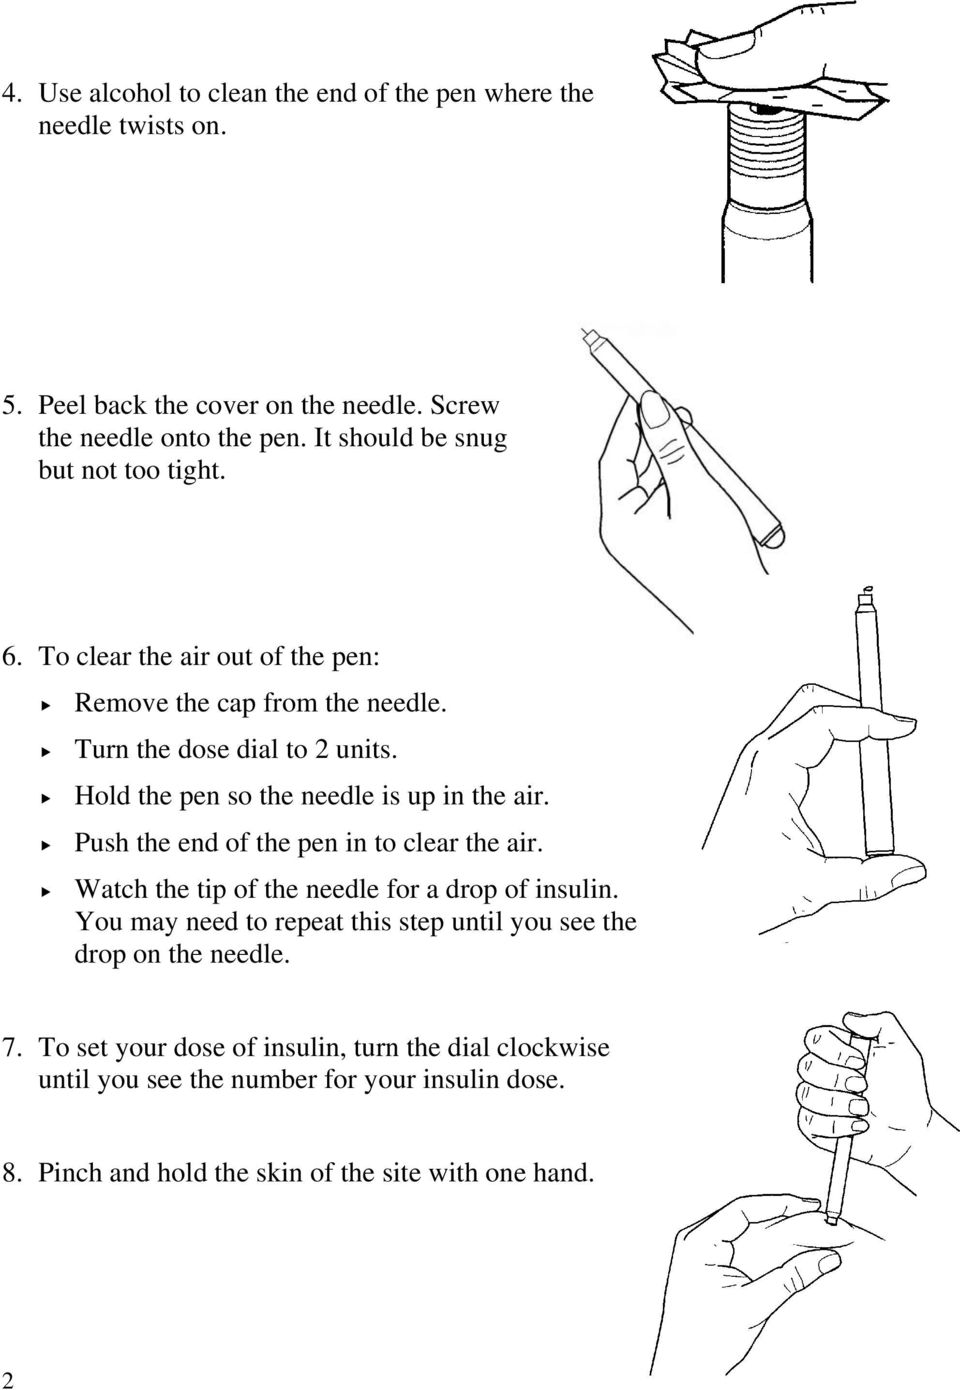 Hold the pen so the needle is up in the air. Push the end of the pen in to clear the air. Watch the tip of the needle for a drop of insulin.